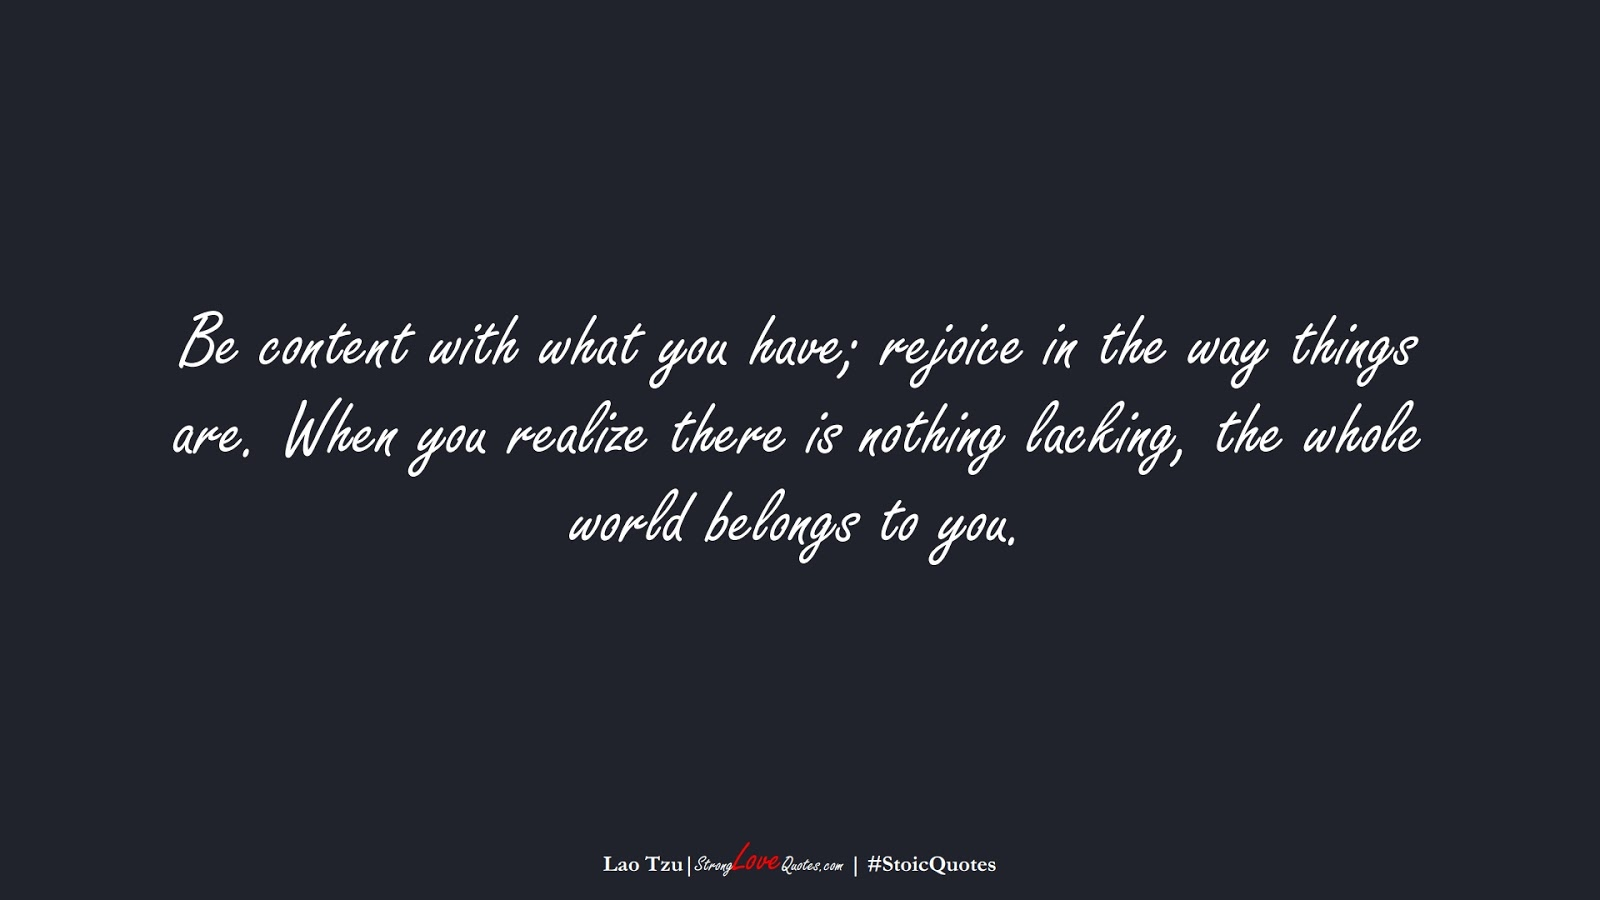 Be content with what you have; rejoice in the way things are. When you realize there is nothing lacking, the whole world belongs to you. (Lao Tzu);  #StoicQuotes